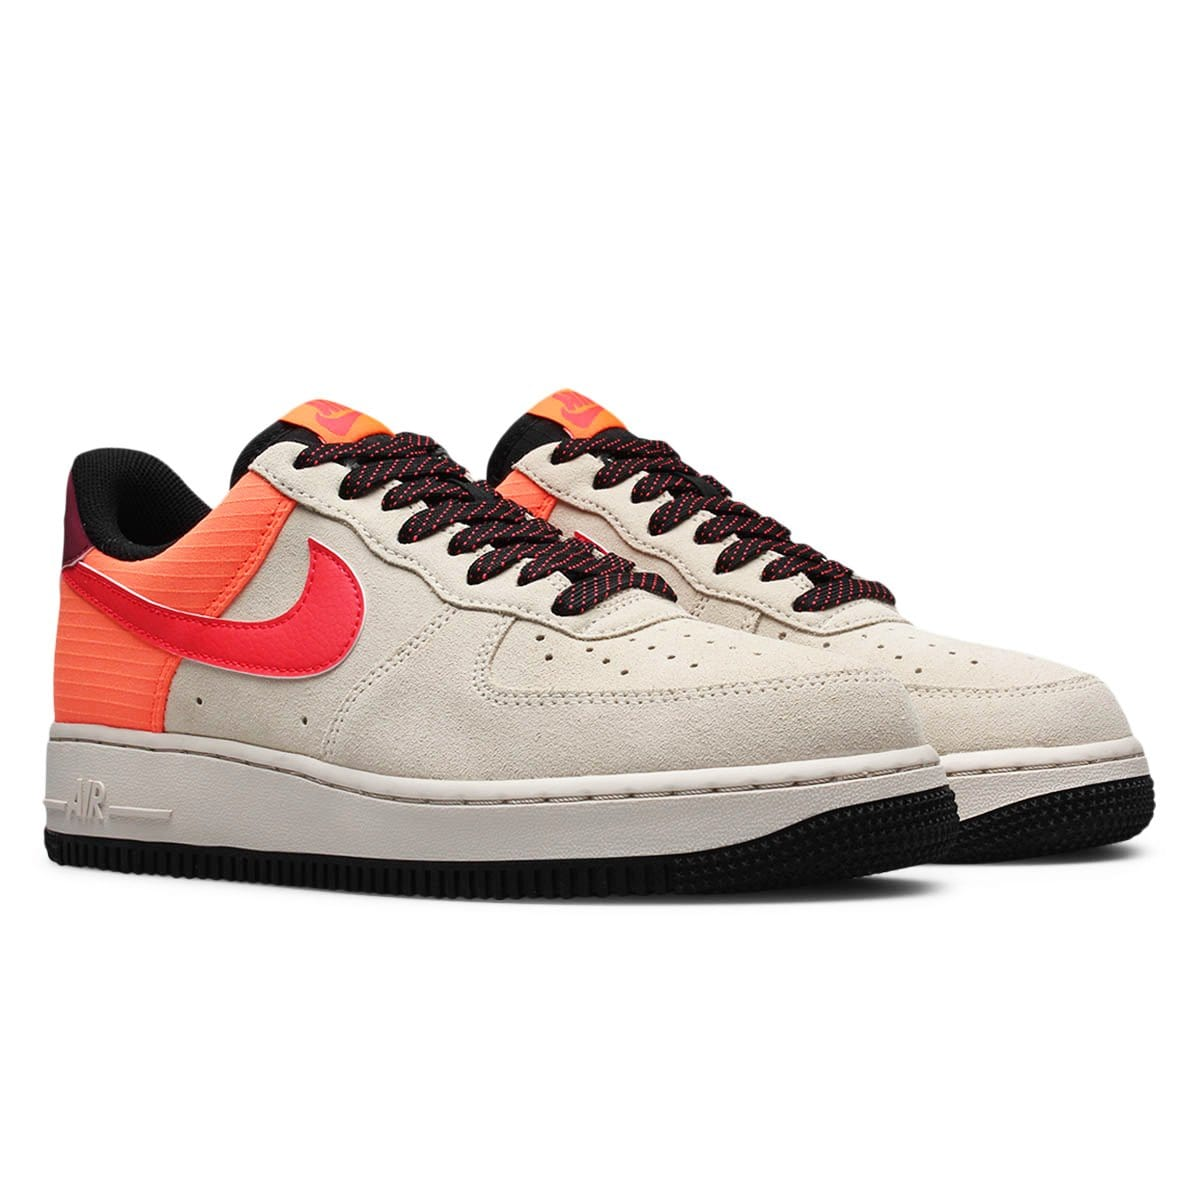 Air Force 1 07 Lv8 Cd0887 100 Bodega